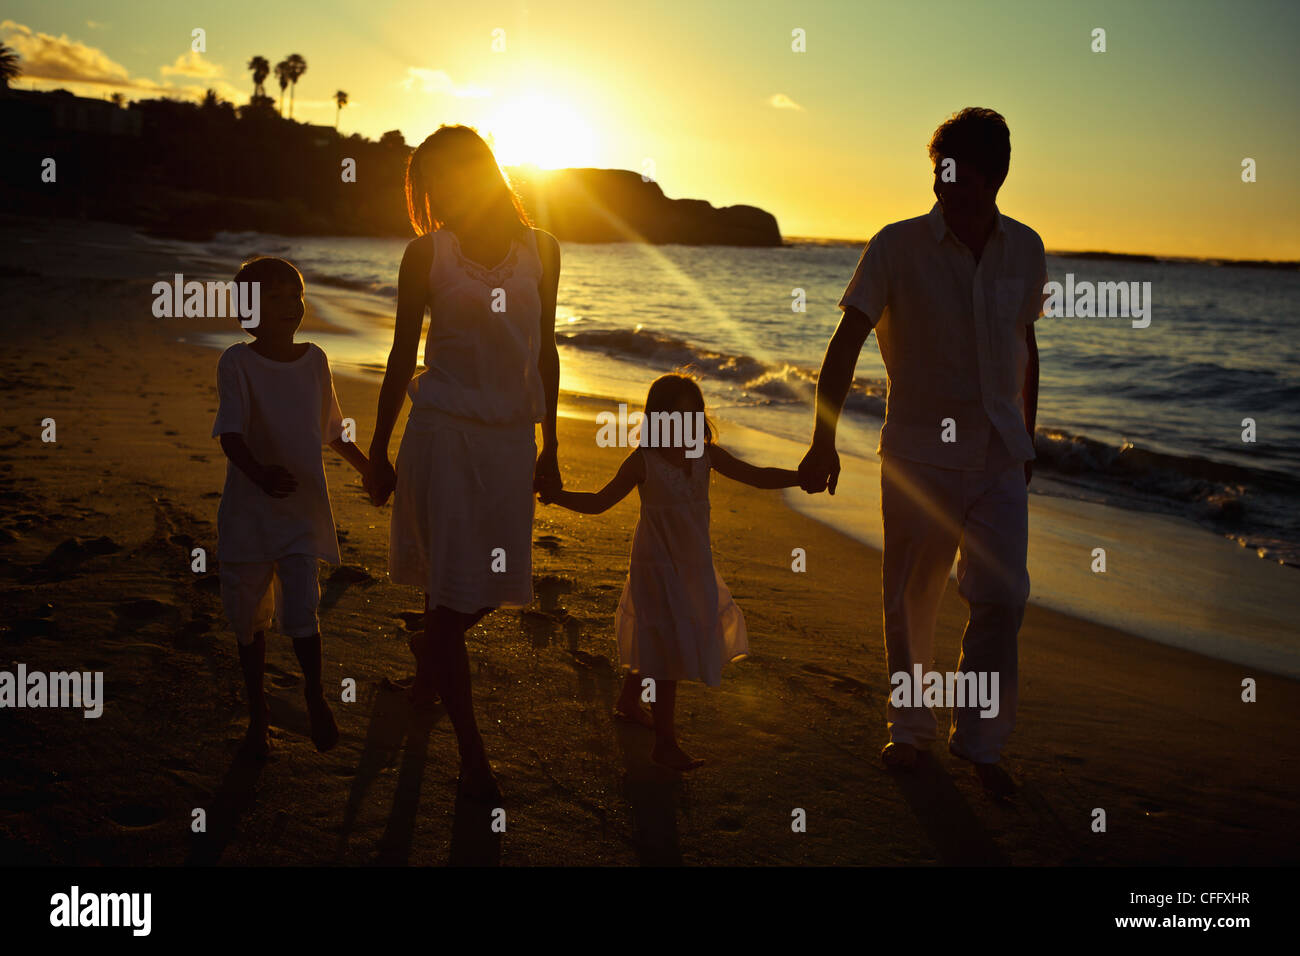 Family walking on the beach while the sun shines on their back - Stock Image